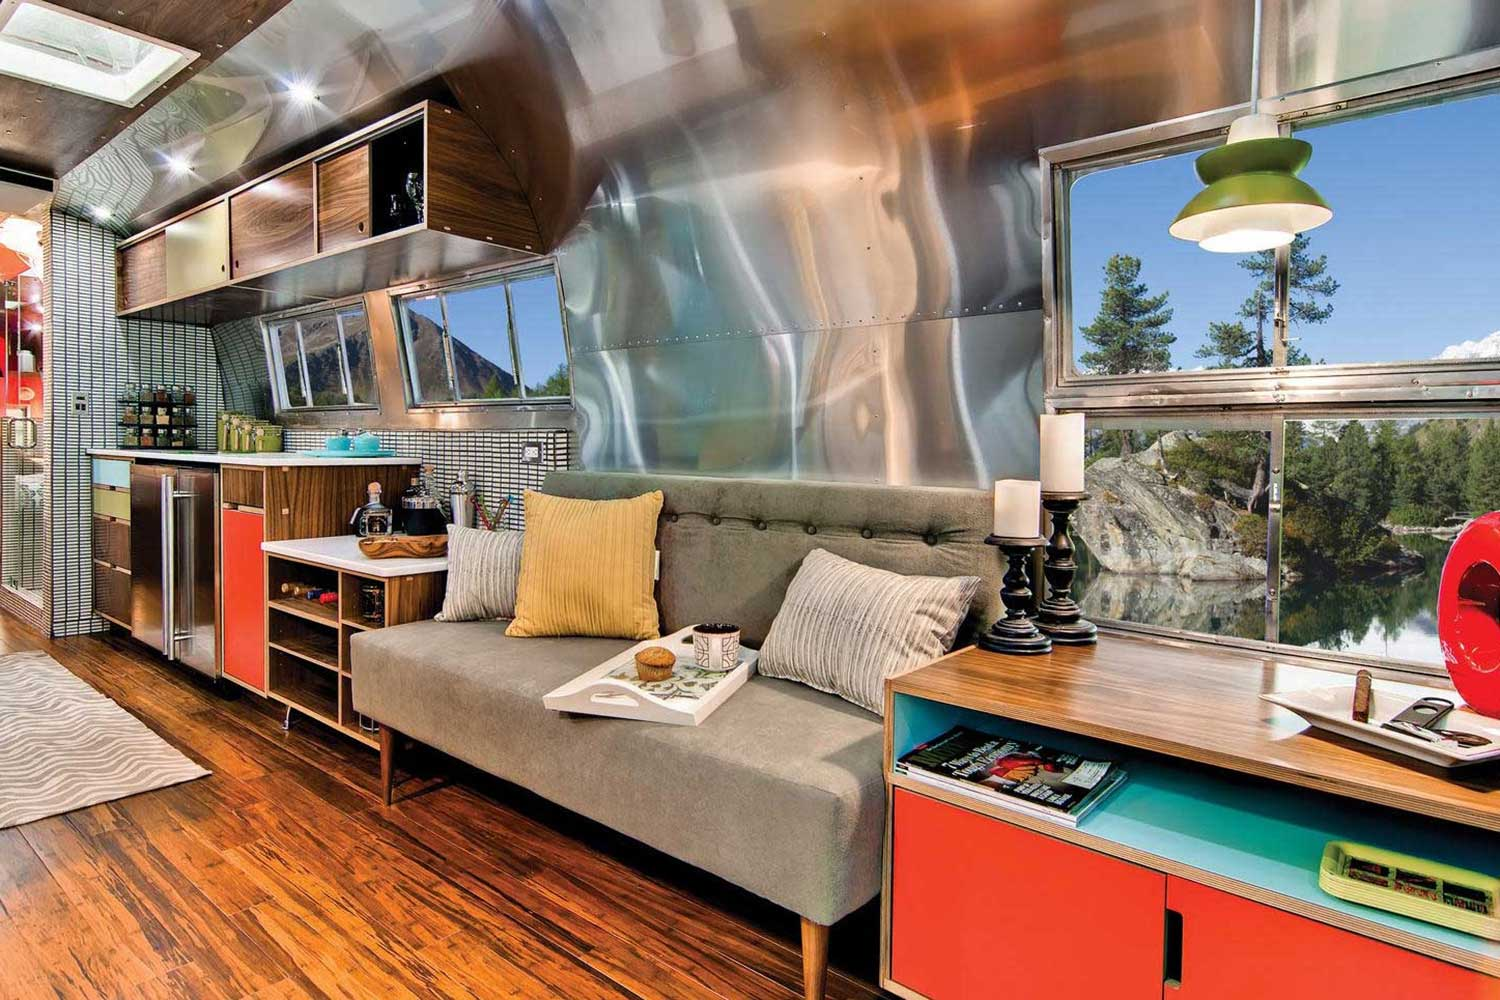 Refurbished Airstream